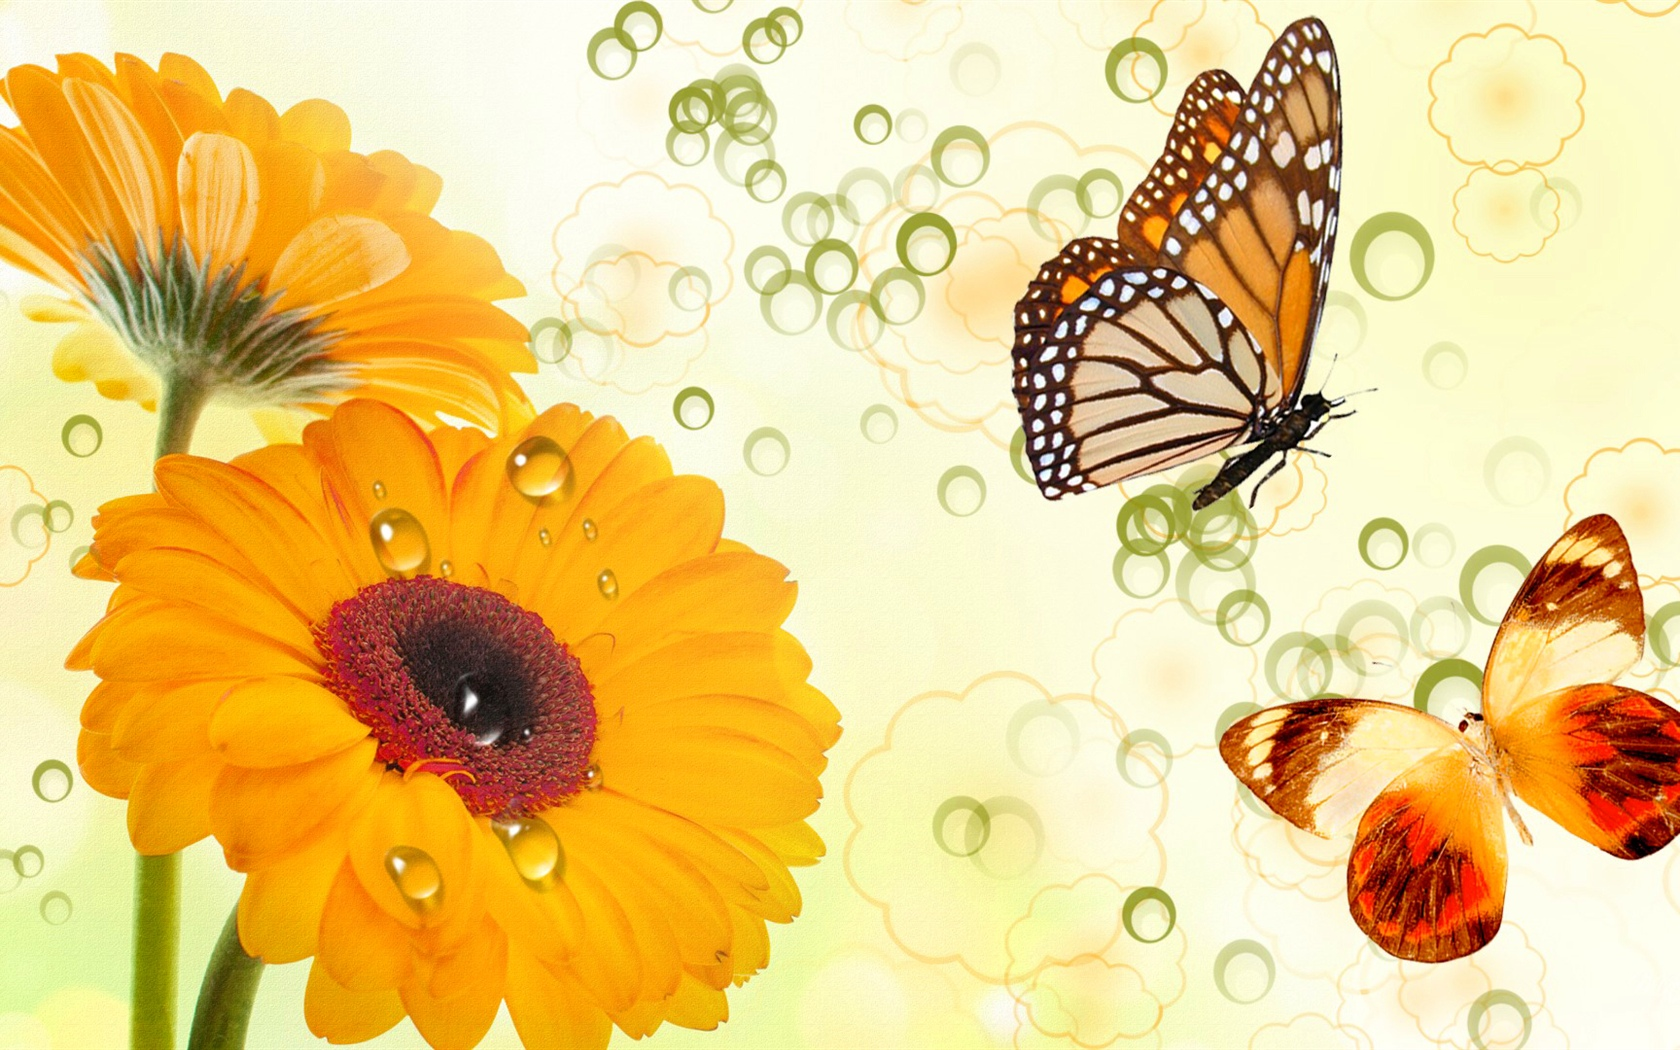 Yellow flowers and butterflies, creative design 1680x1050 wallpaper